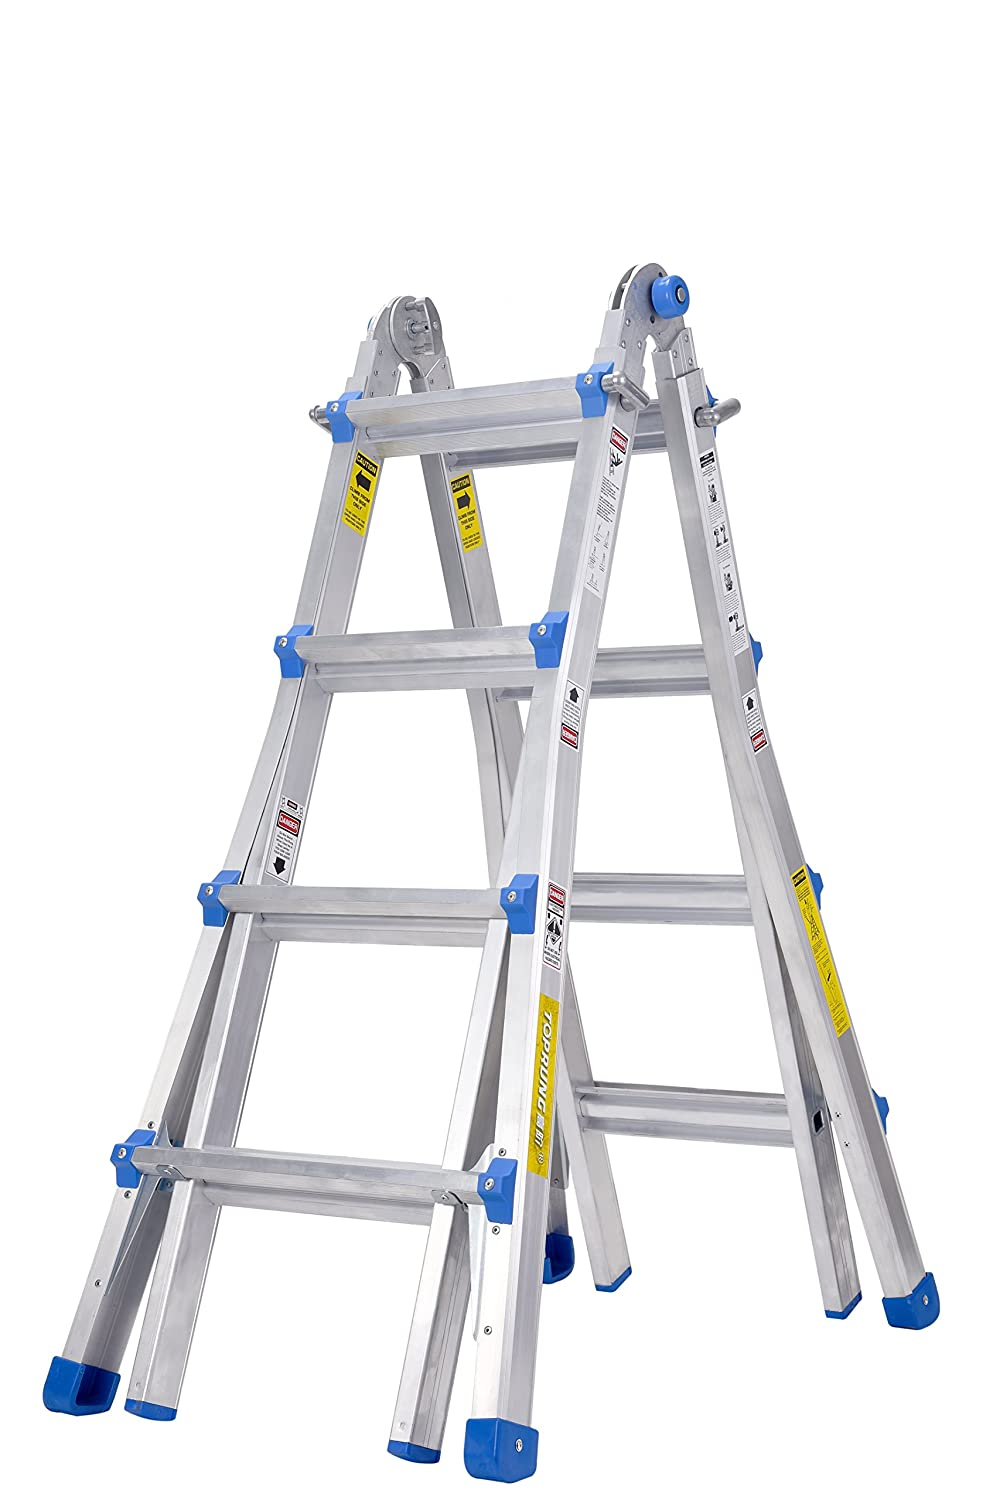 Toprung Model 17 Ft Aluminum Extension Multi Purpose Ladder With 300 Lb Load Capacity Type Ia Duty Rating Amazon Com